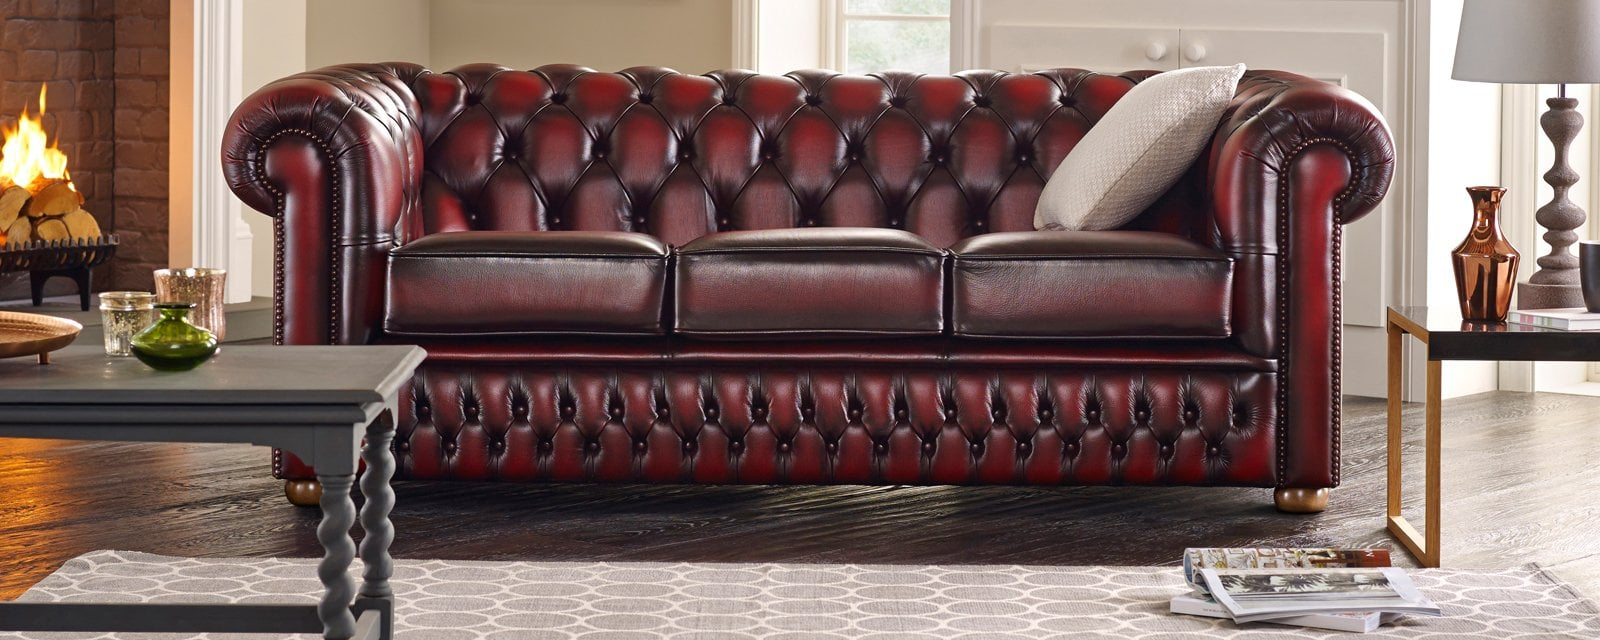 How To Spot A Quality Chesterfield Sofa | Sofassaxon For Chesterfield Sofas And Chairs (View 9 of 15)